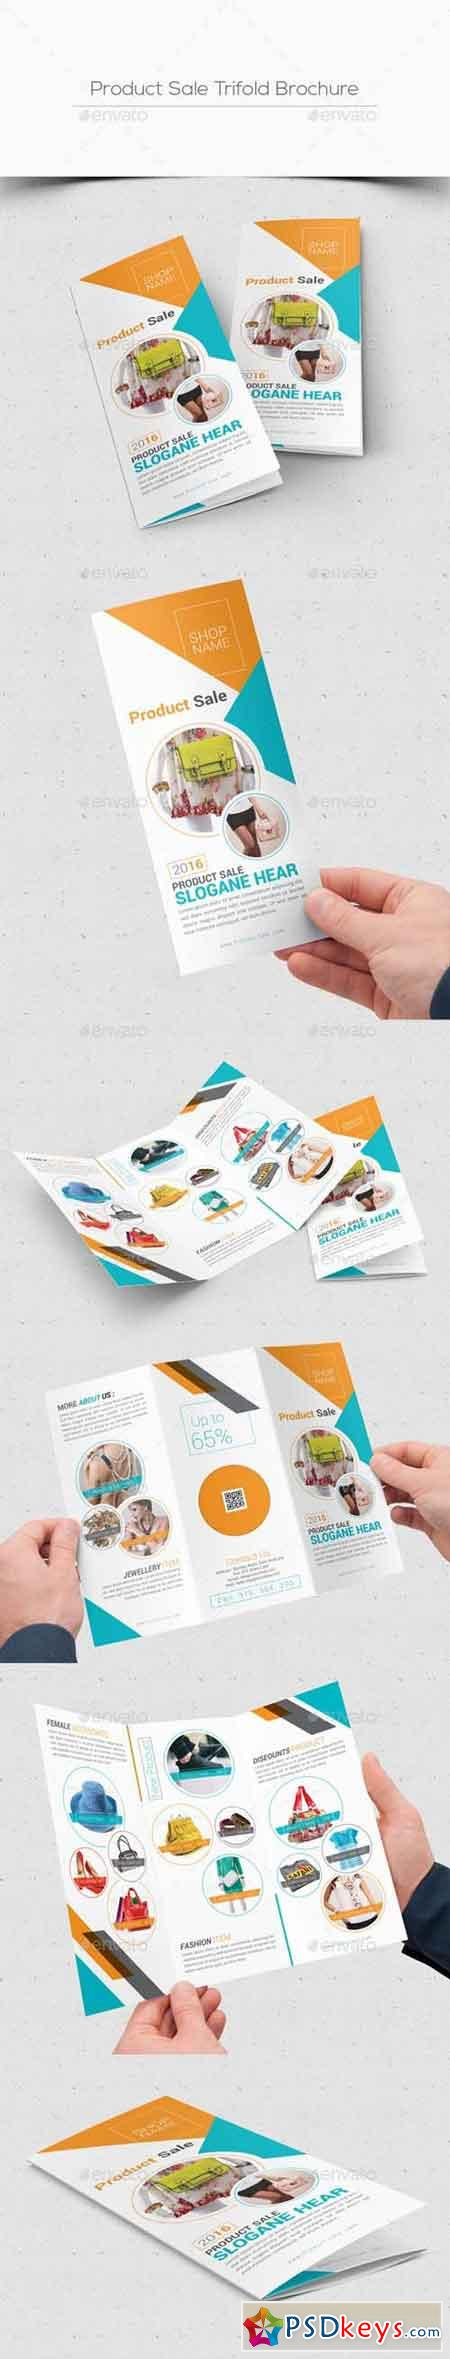 Product Sale Trifold Brochure 17869873